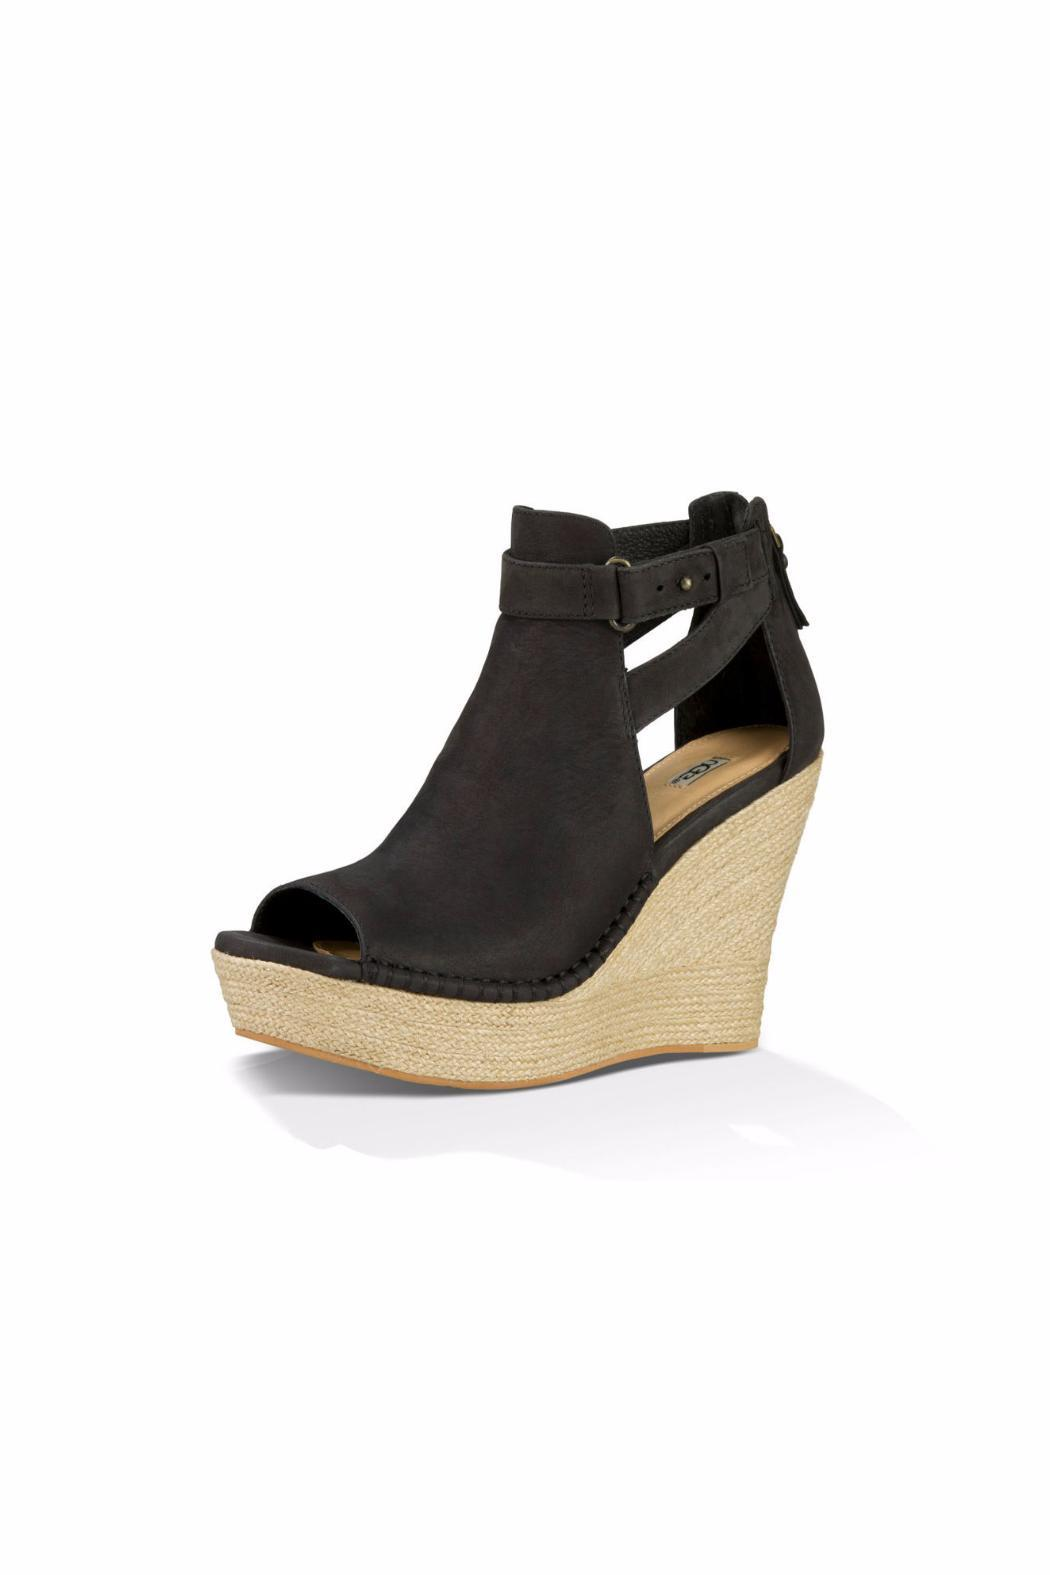 0414038d3d3 UGG Australia Jolina Nubuck Wedge from New Hampshire by Stiletto ...